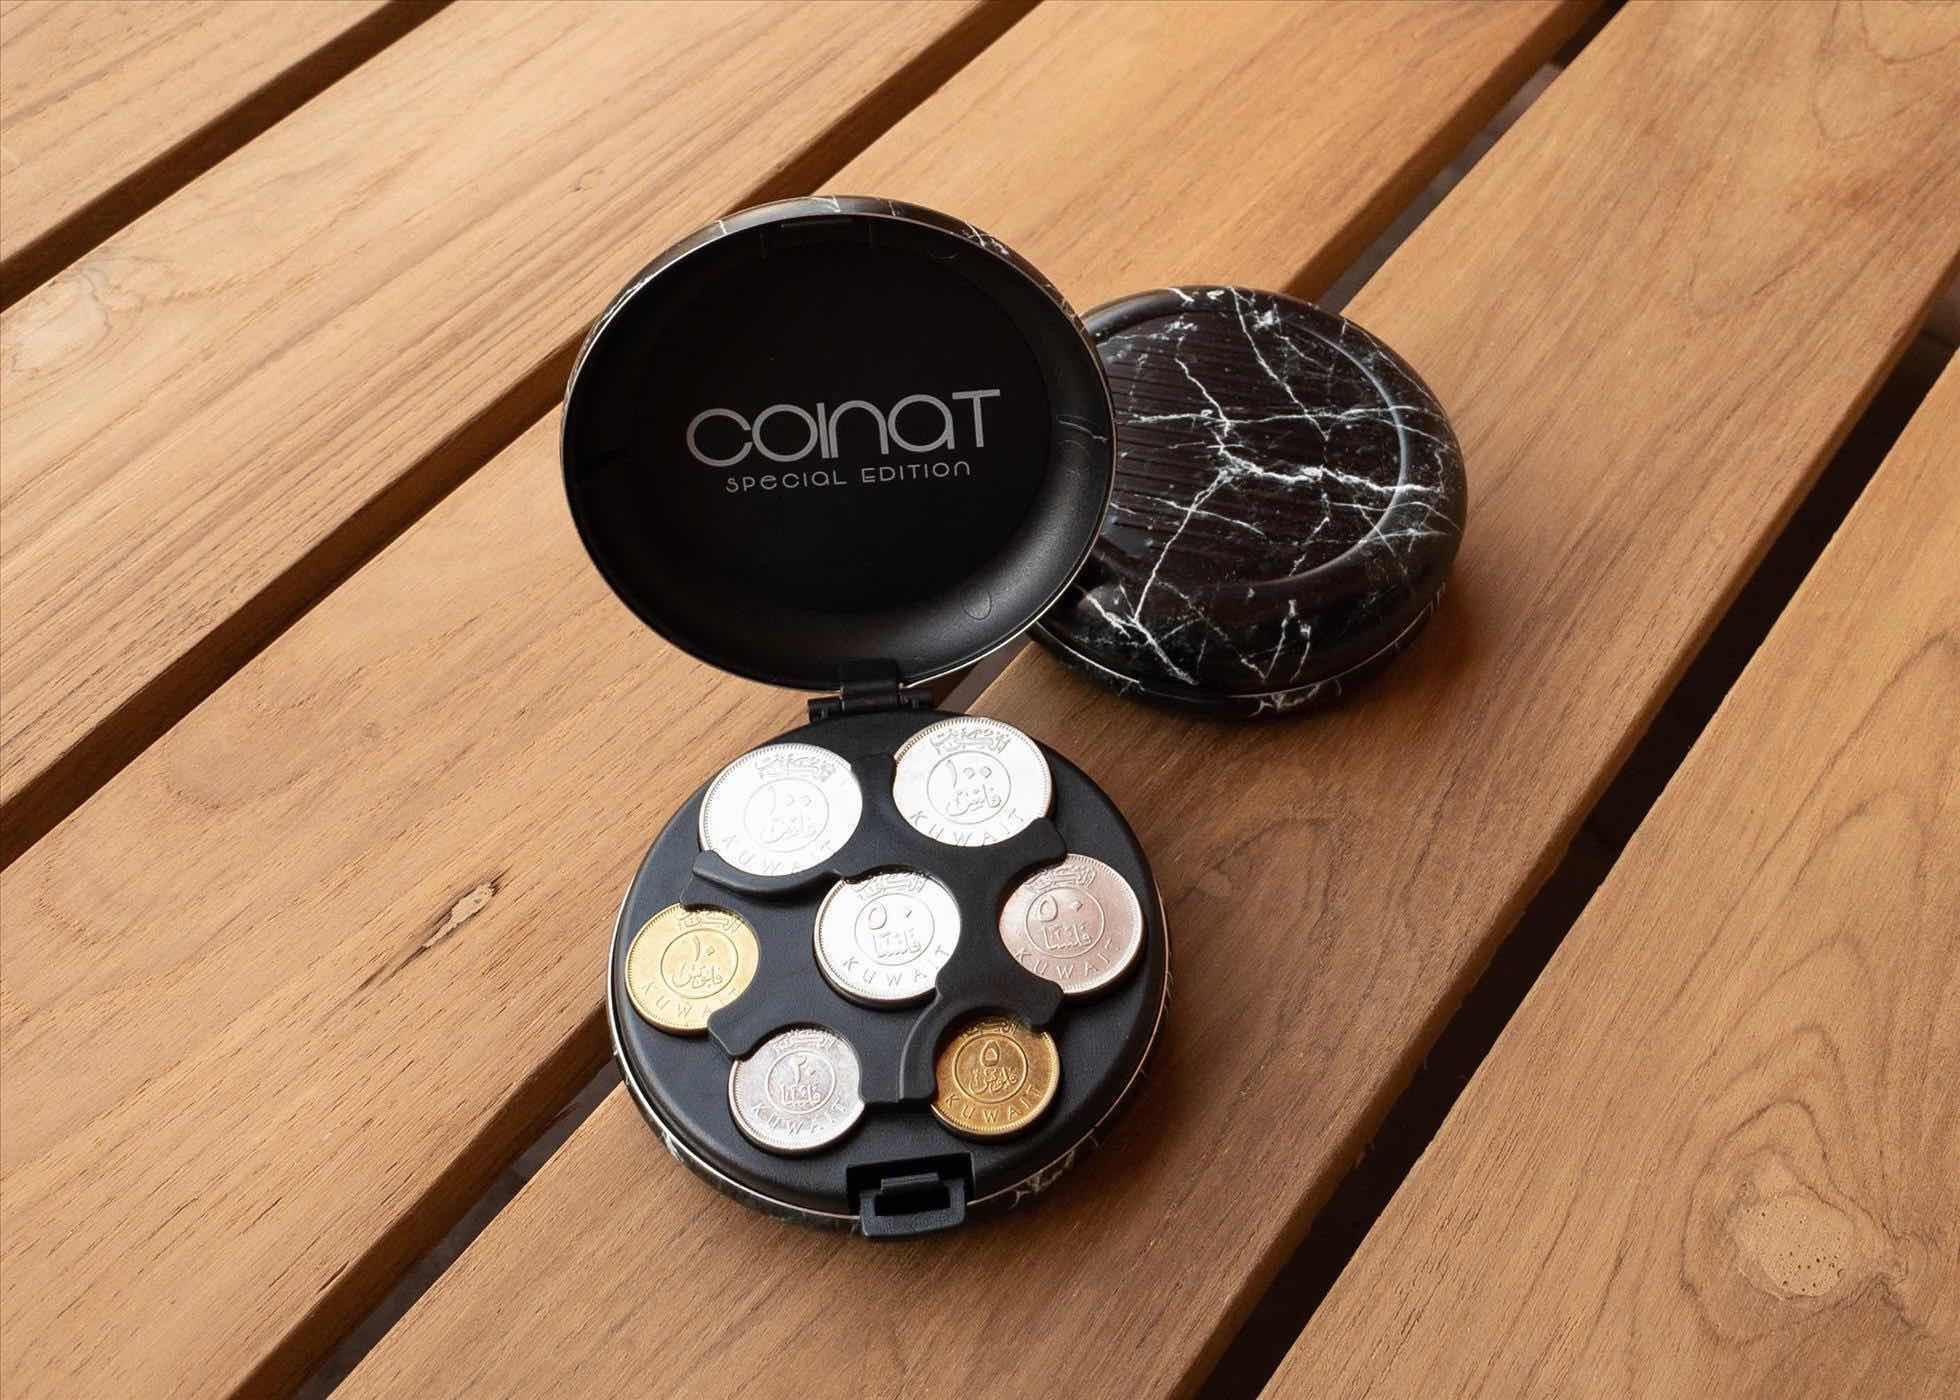 Coinat - Special Edition